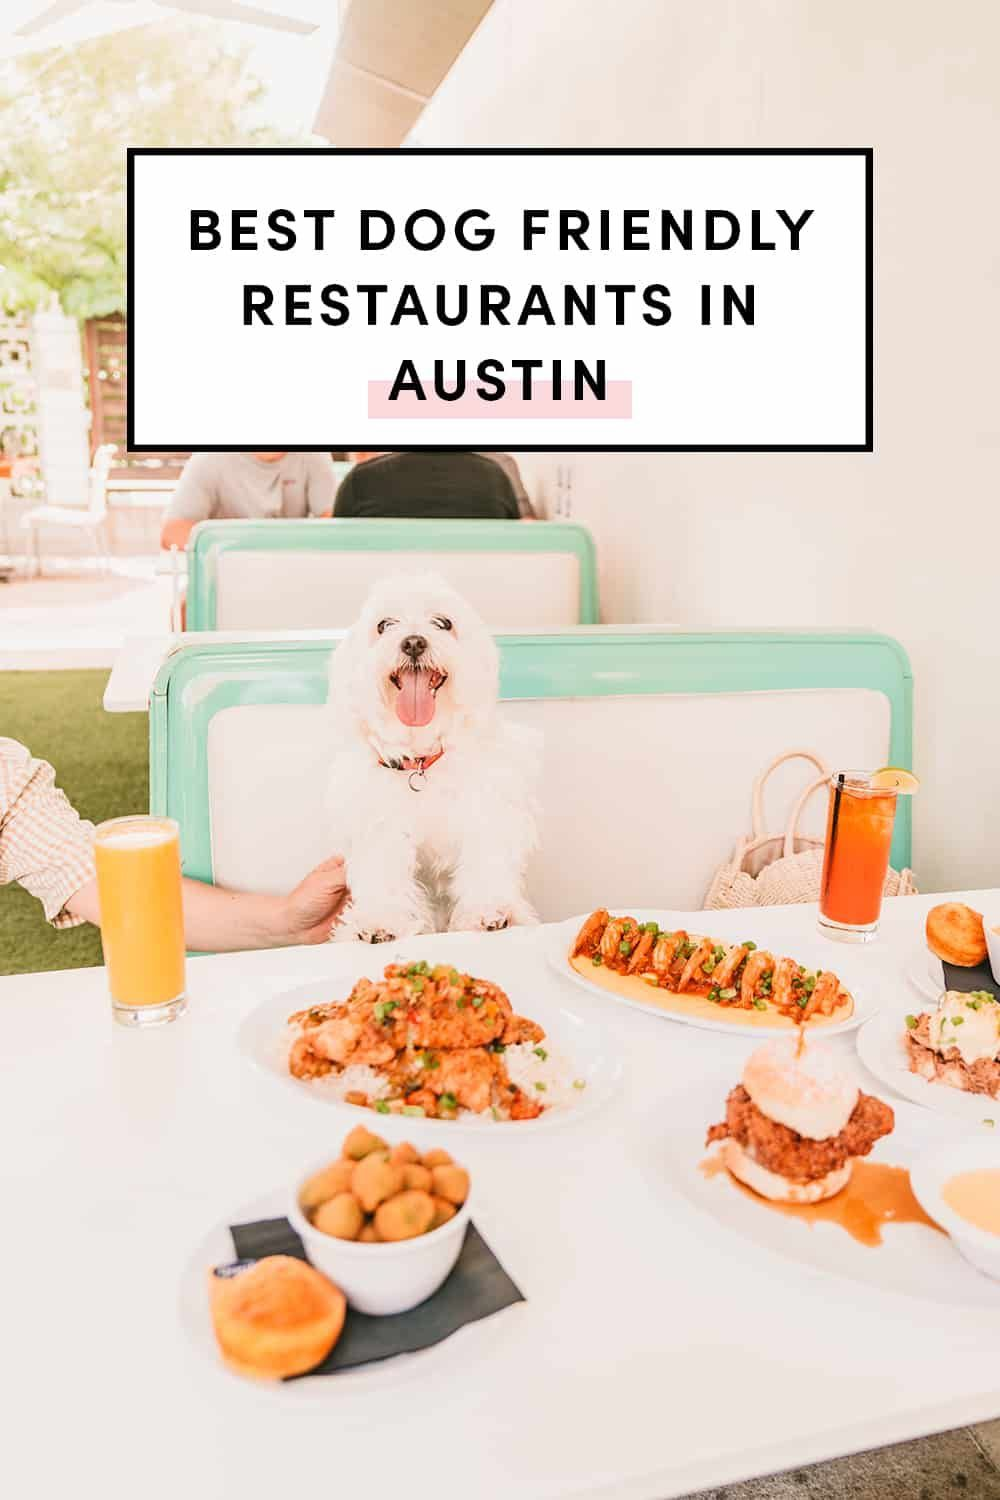 19 Best Dog Friendly Restaurants In Austin A Taste Of Koko In 2020 Dog Friends Boozy Brunch Austin City Guide